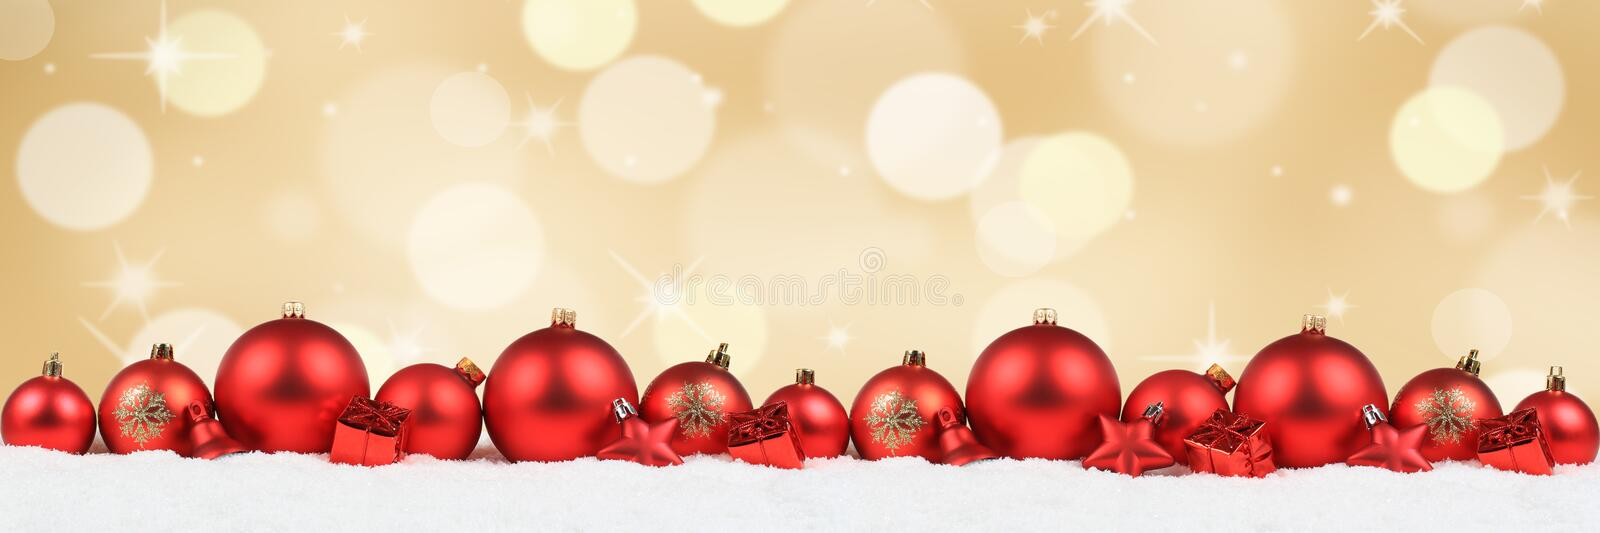 Christmas balls banner red decoration golden background snow win stock images